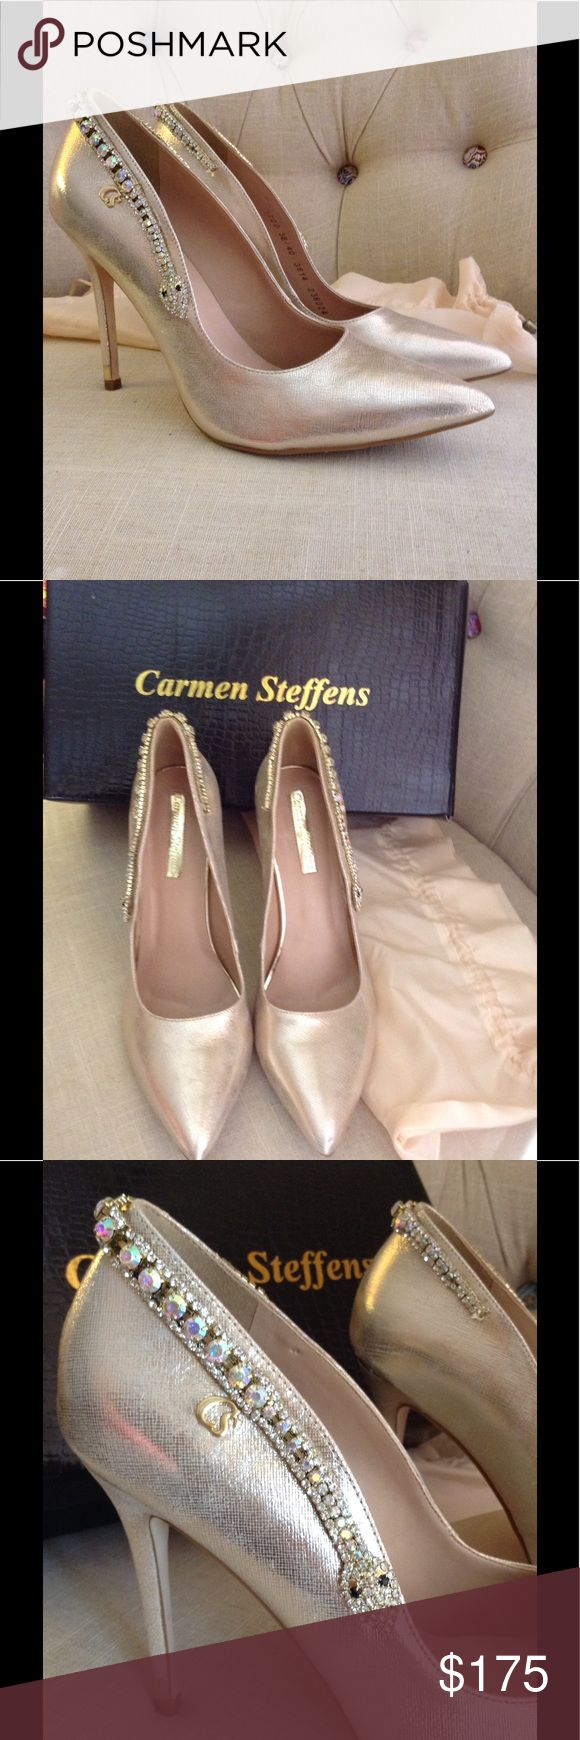 Crystal snake pumps by Carmen Steffens- RARE! Gold leather pumps with a crystal snake slithering around the heel. Fabulous and limited edition. Worn once to a party. Original Box and dust bag. Euro size 40 fits just slightly small - true to my exact US 9.5 size. Carmen Steffens Shoes Heels